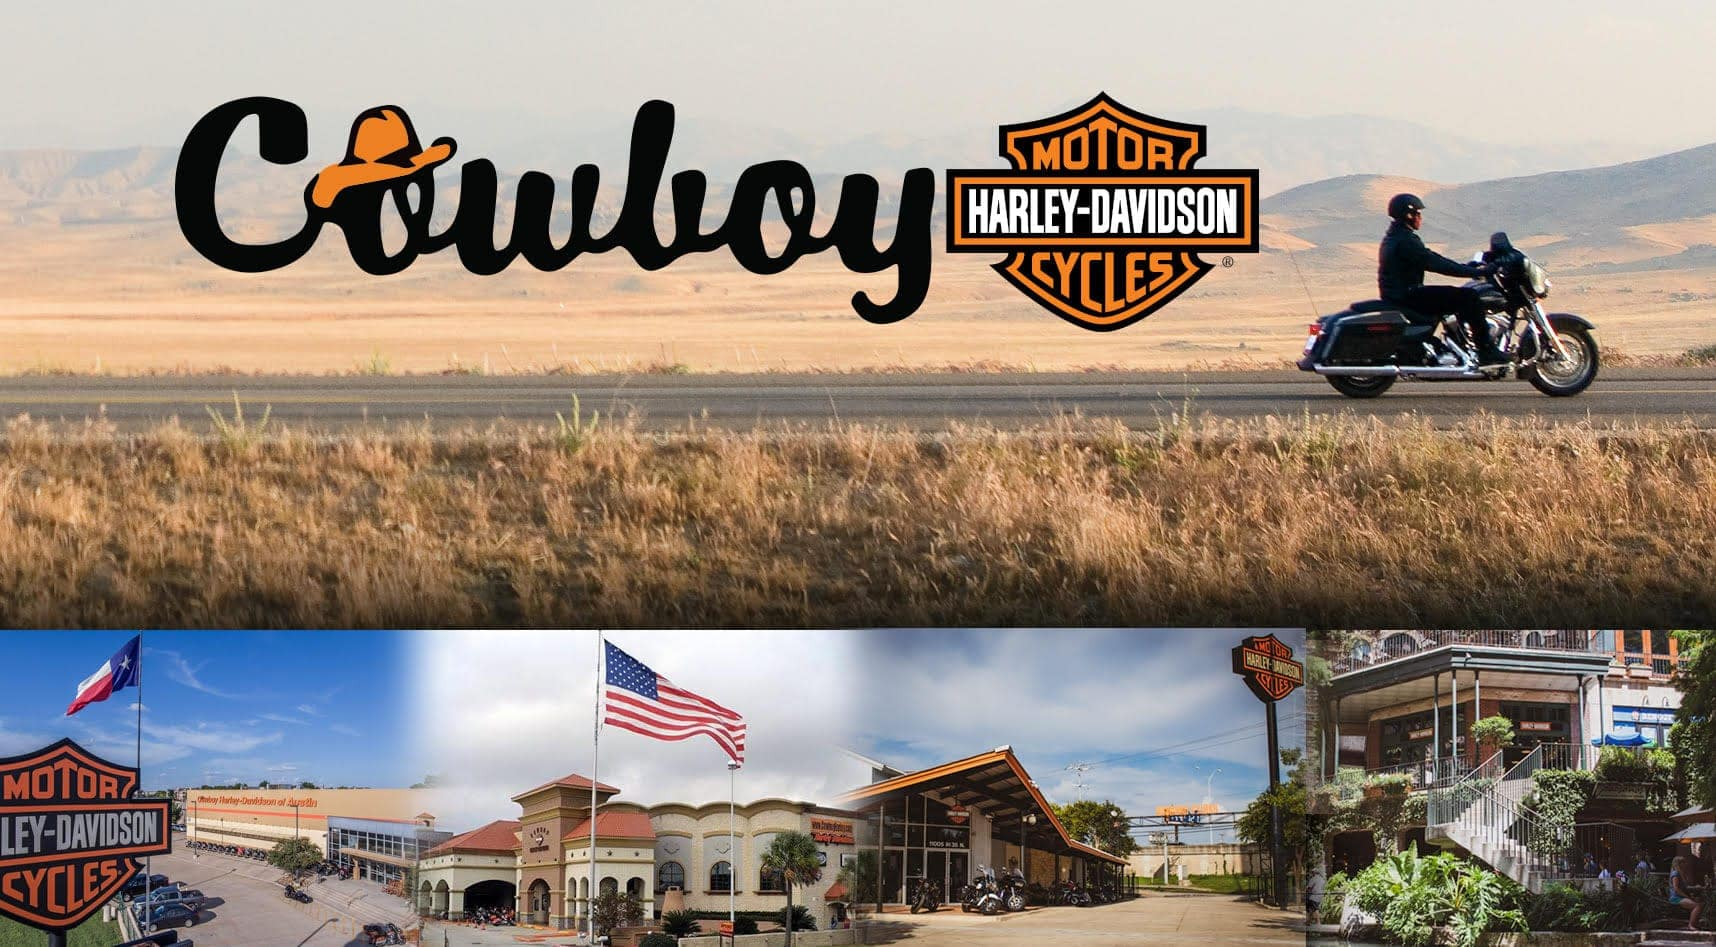 Cowboy Harley-Davidson photo collage of motorcyles and dealership